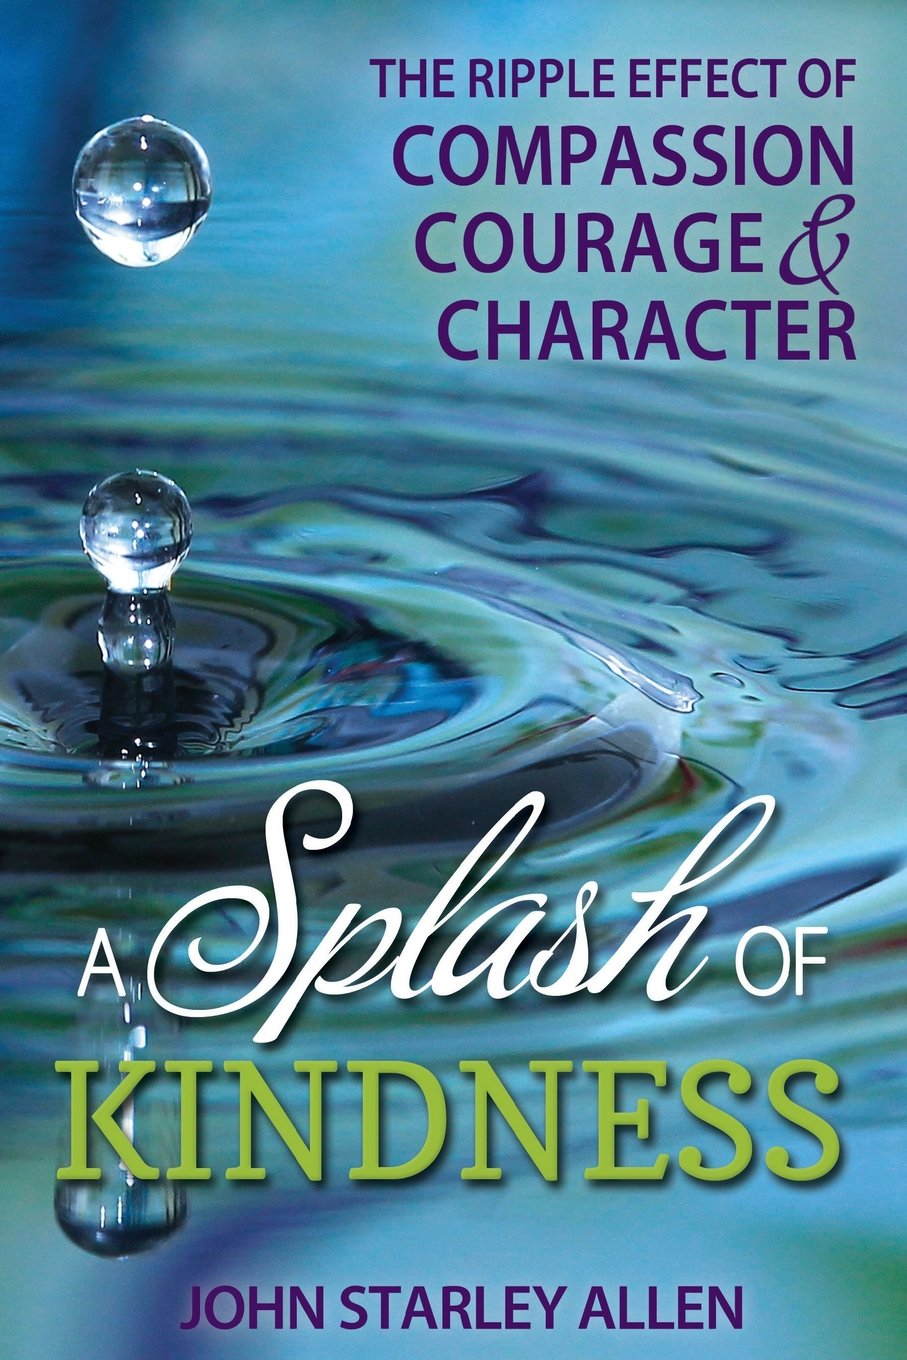 Download A Splash of Kindness: The Ripple Effect of Compassion, Courage, and Character PDF